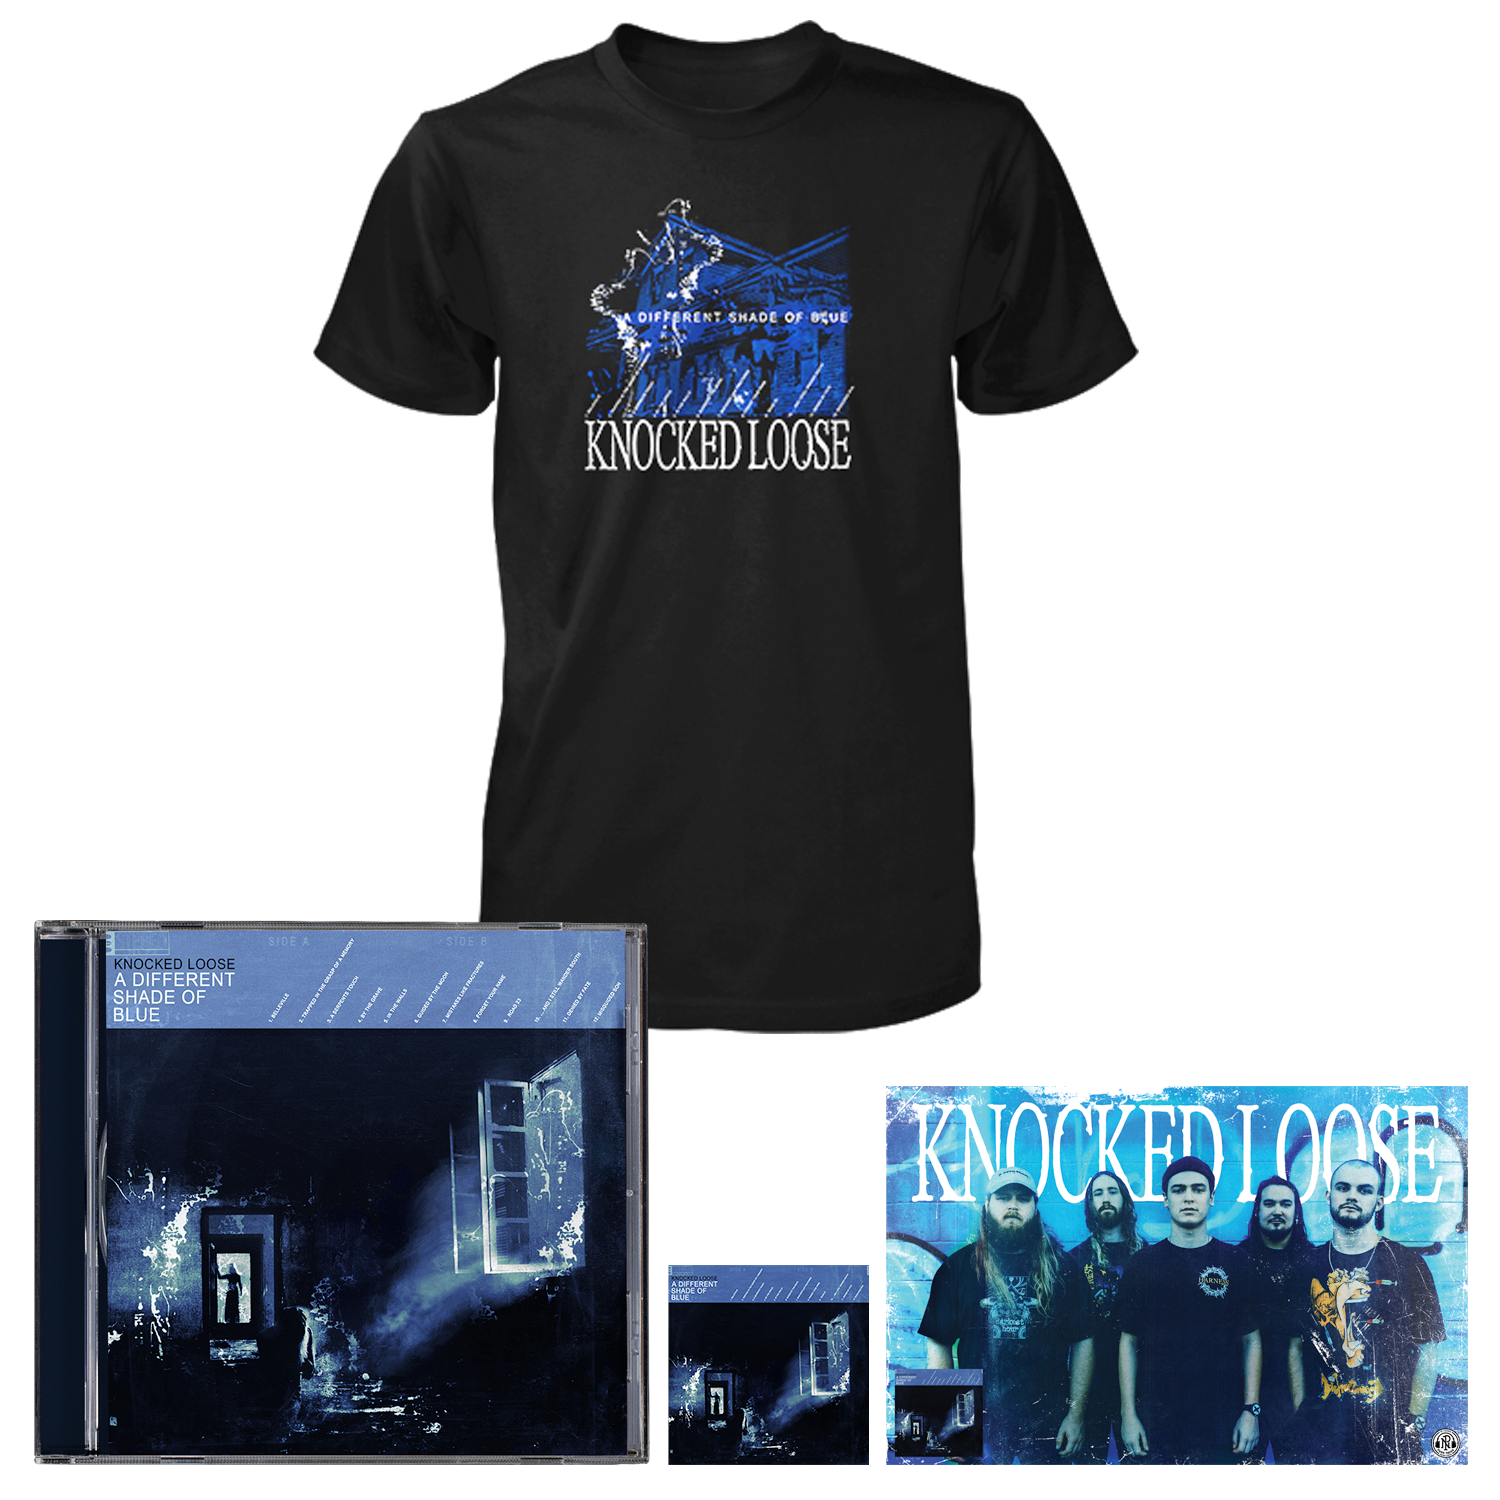 Knocked Loose 'A Different Shade of Blue' (CD + Shirt (black) + Poster + Sticker)